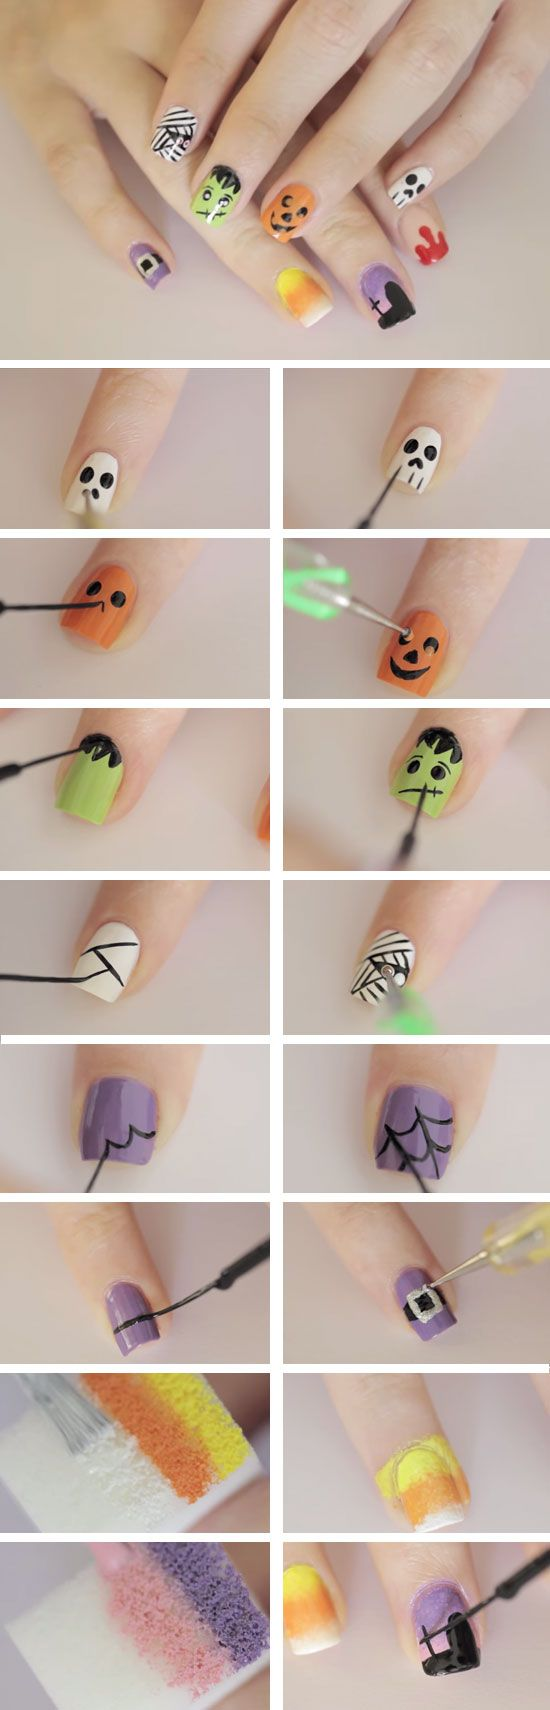 Ghoulish Shapes + Figures | Click Pic for 23 Spooky Nail Art Ideas for Halloween | DIY Halloween Nail Art for Kids